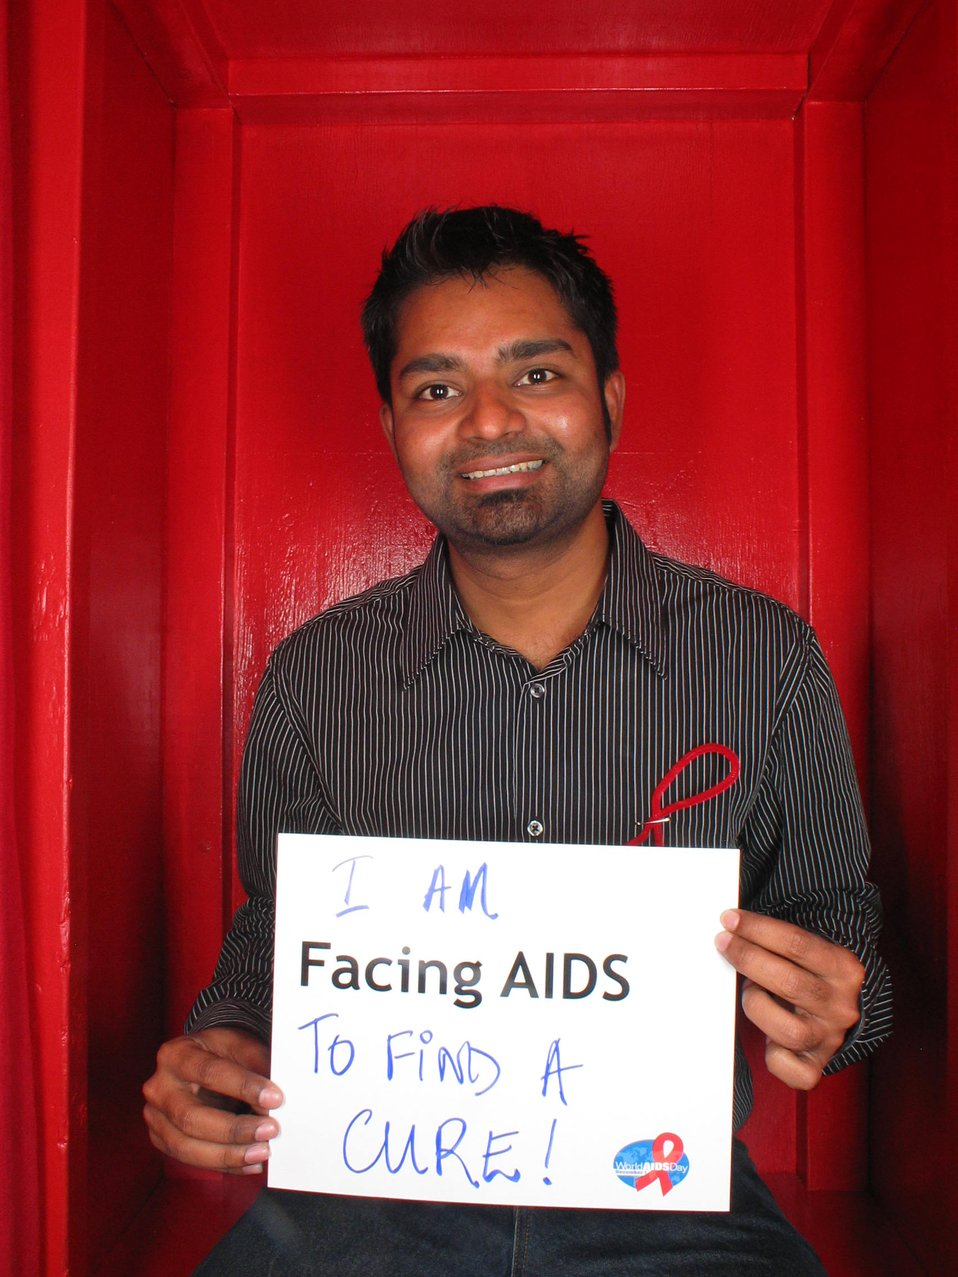 I am Facing AIDS to find a cure!